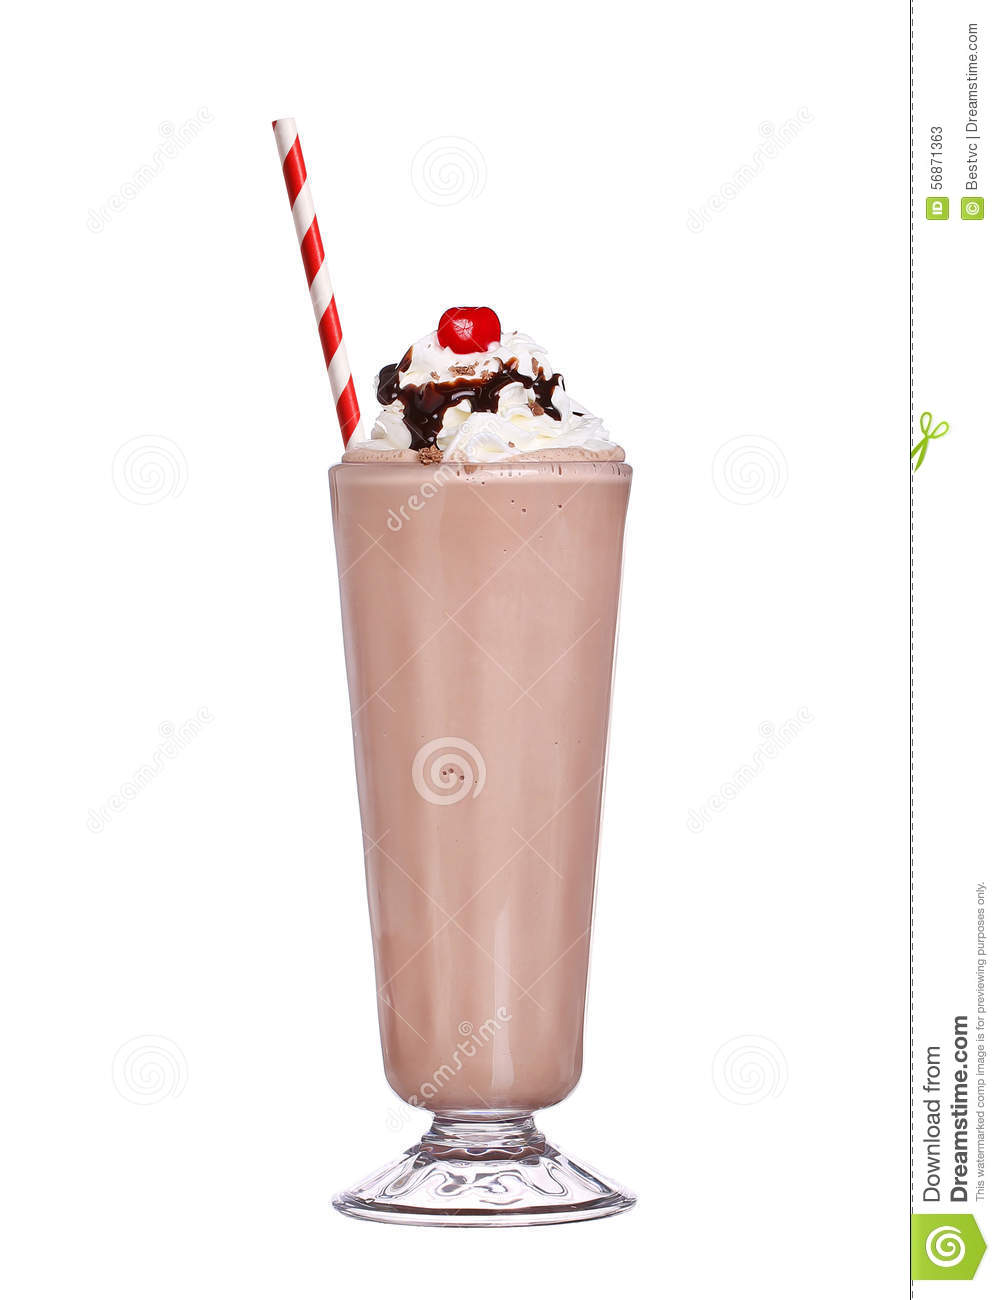 Milkshakes chocolate flavor with cherry on top and whipped cream